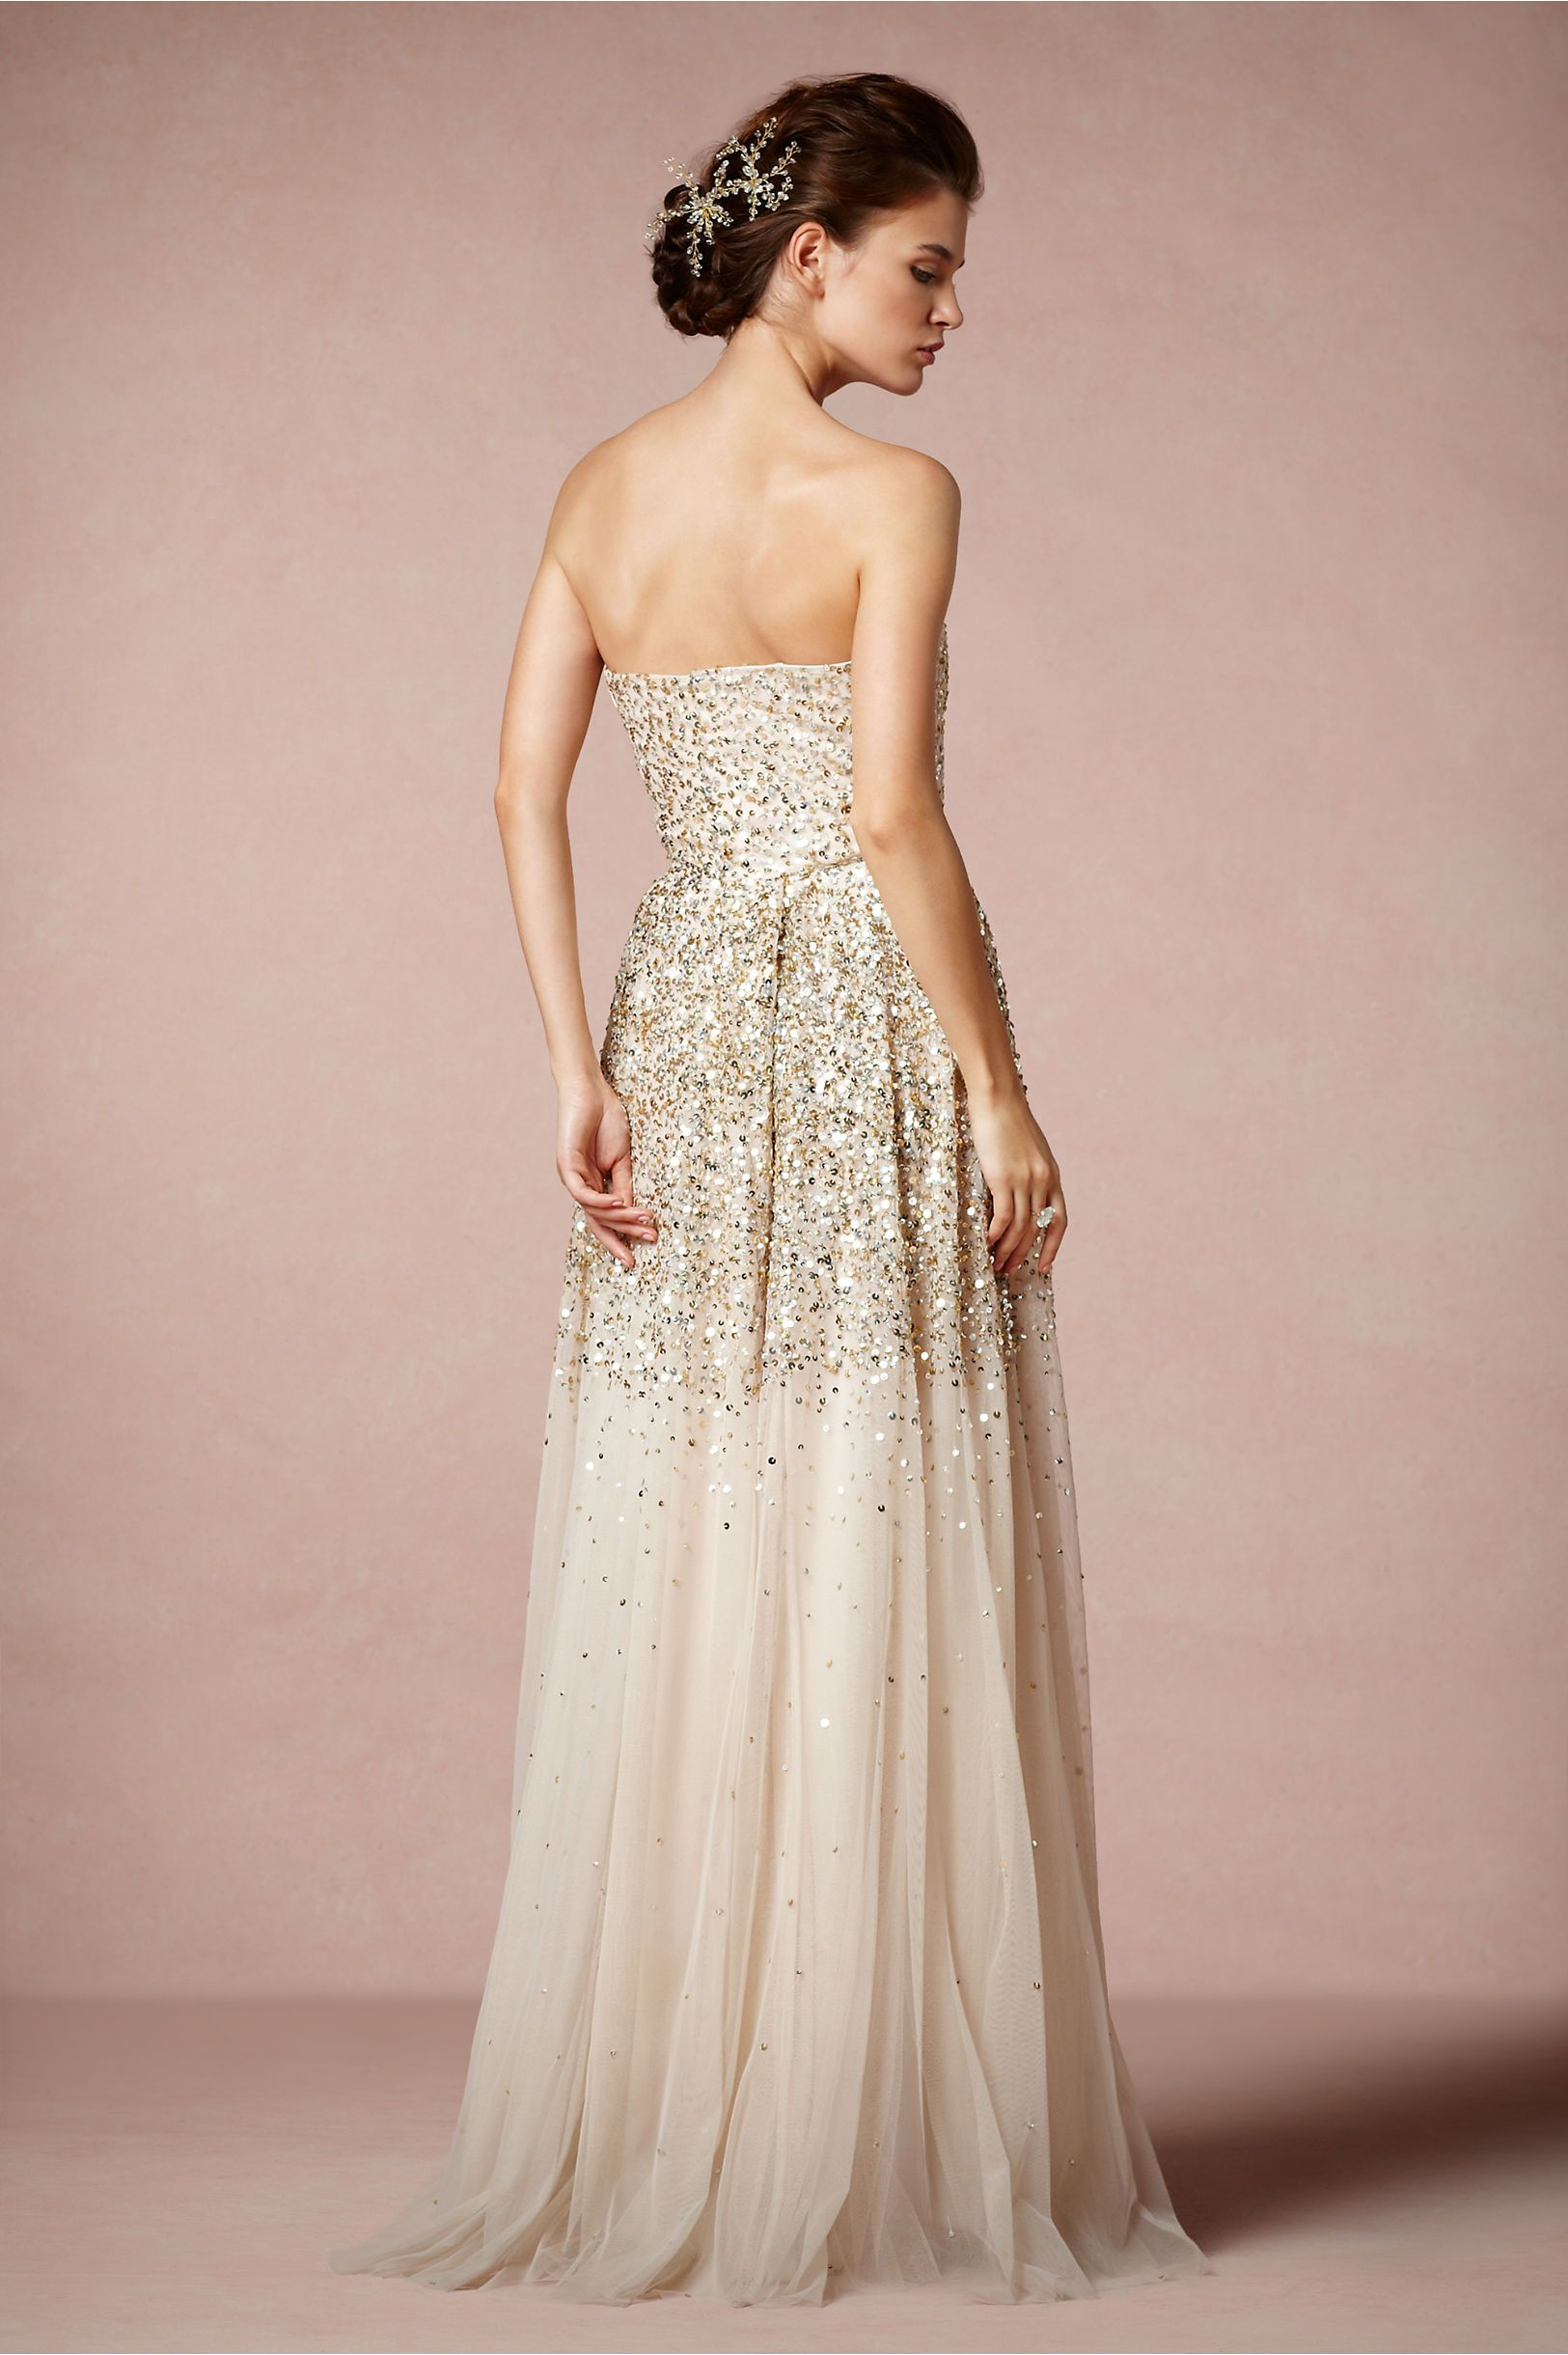 Isadora Gown from BHLDN. | a (far-off) wedding | Pinterest | Boda ...